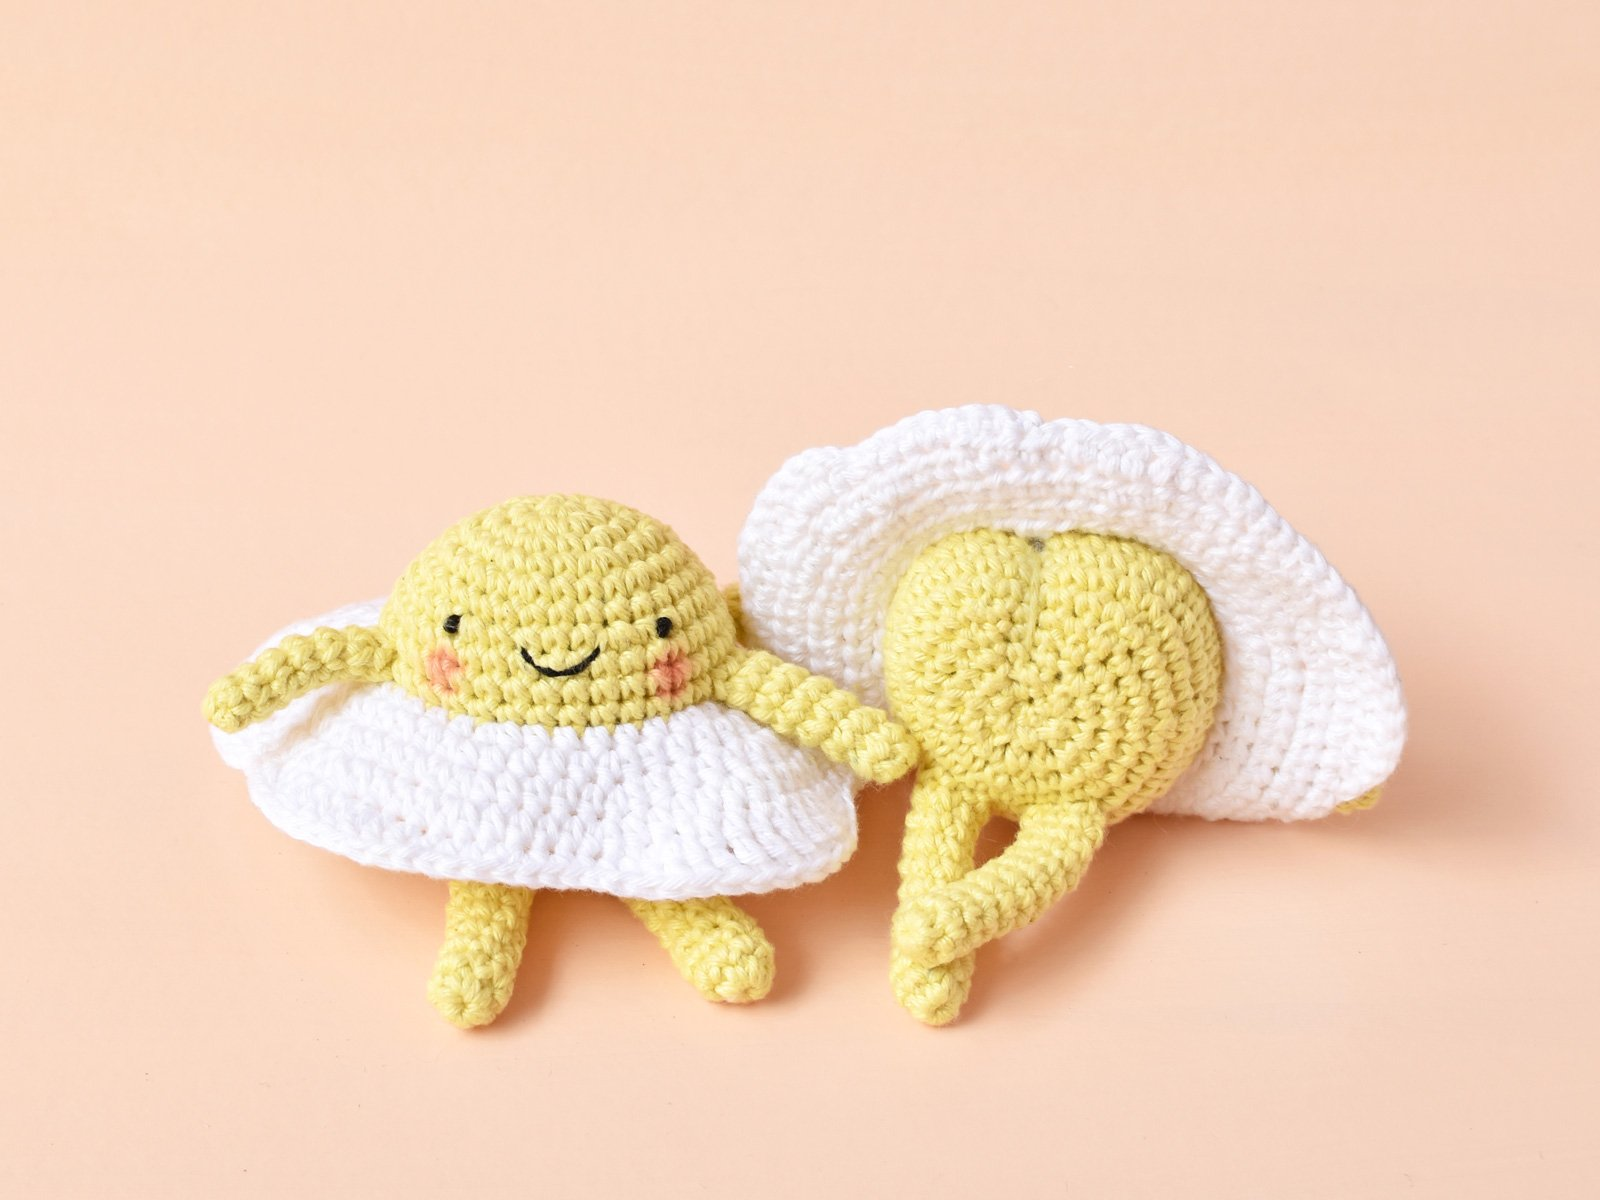 Two egg amigurumi sitting next to each other. One is facing the camera, the other is showing his butt. They are on a peach background.